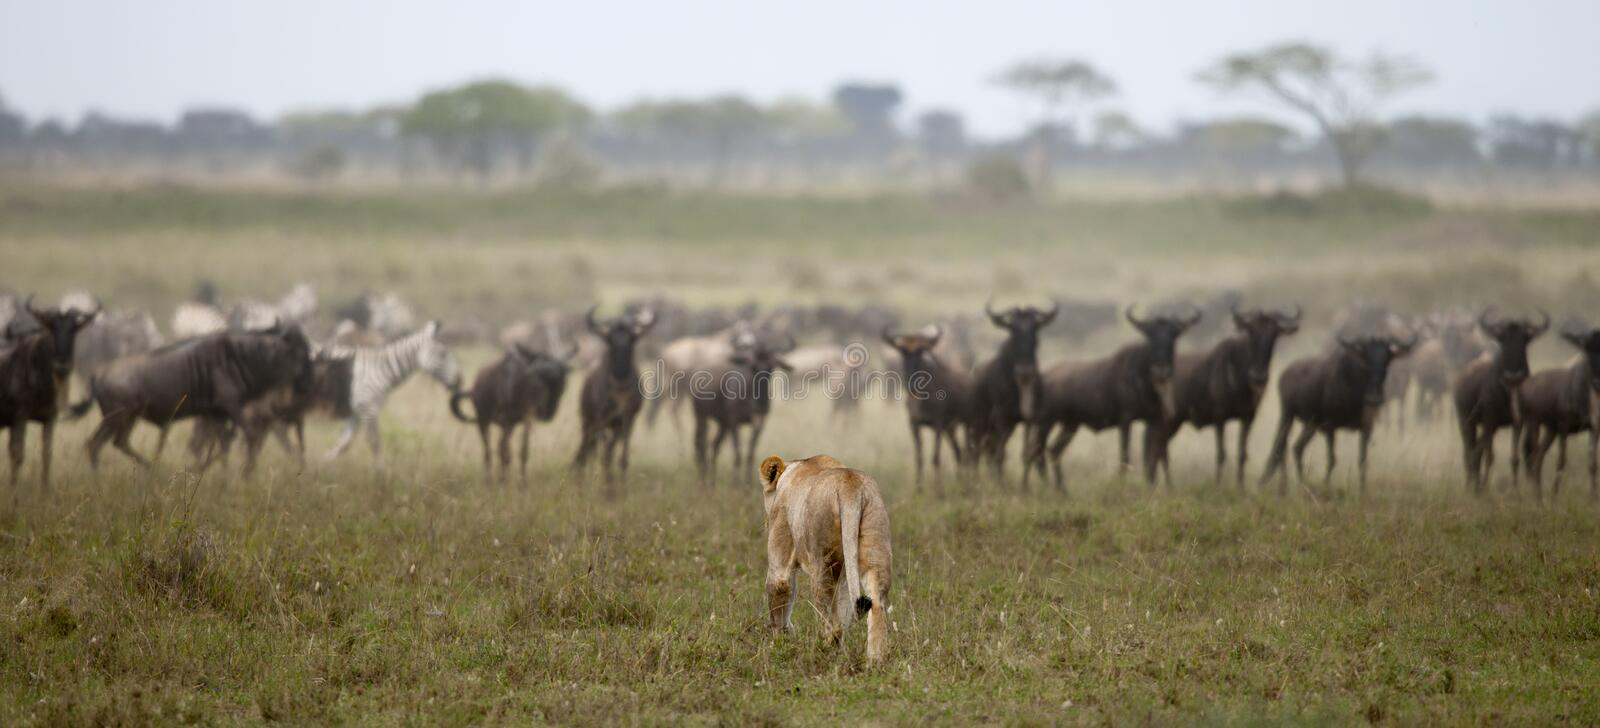 Download Lioness And Herd Of Wildebeest At The Serengeti Stock Image - Image: 21159971